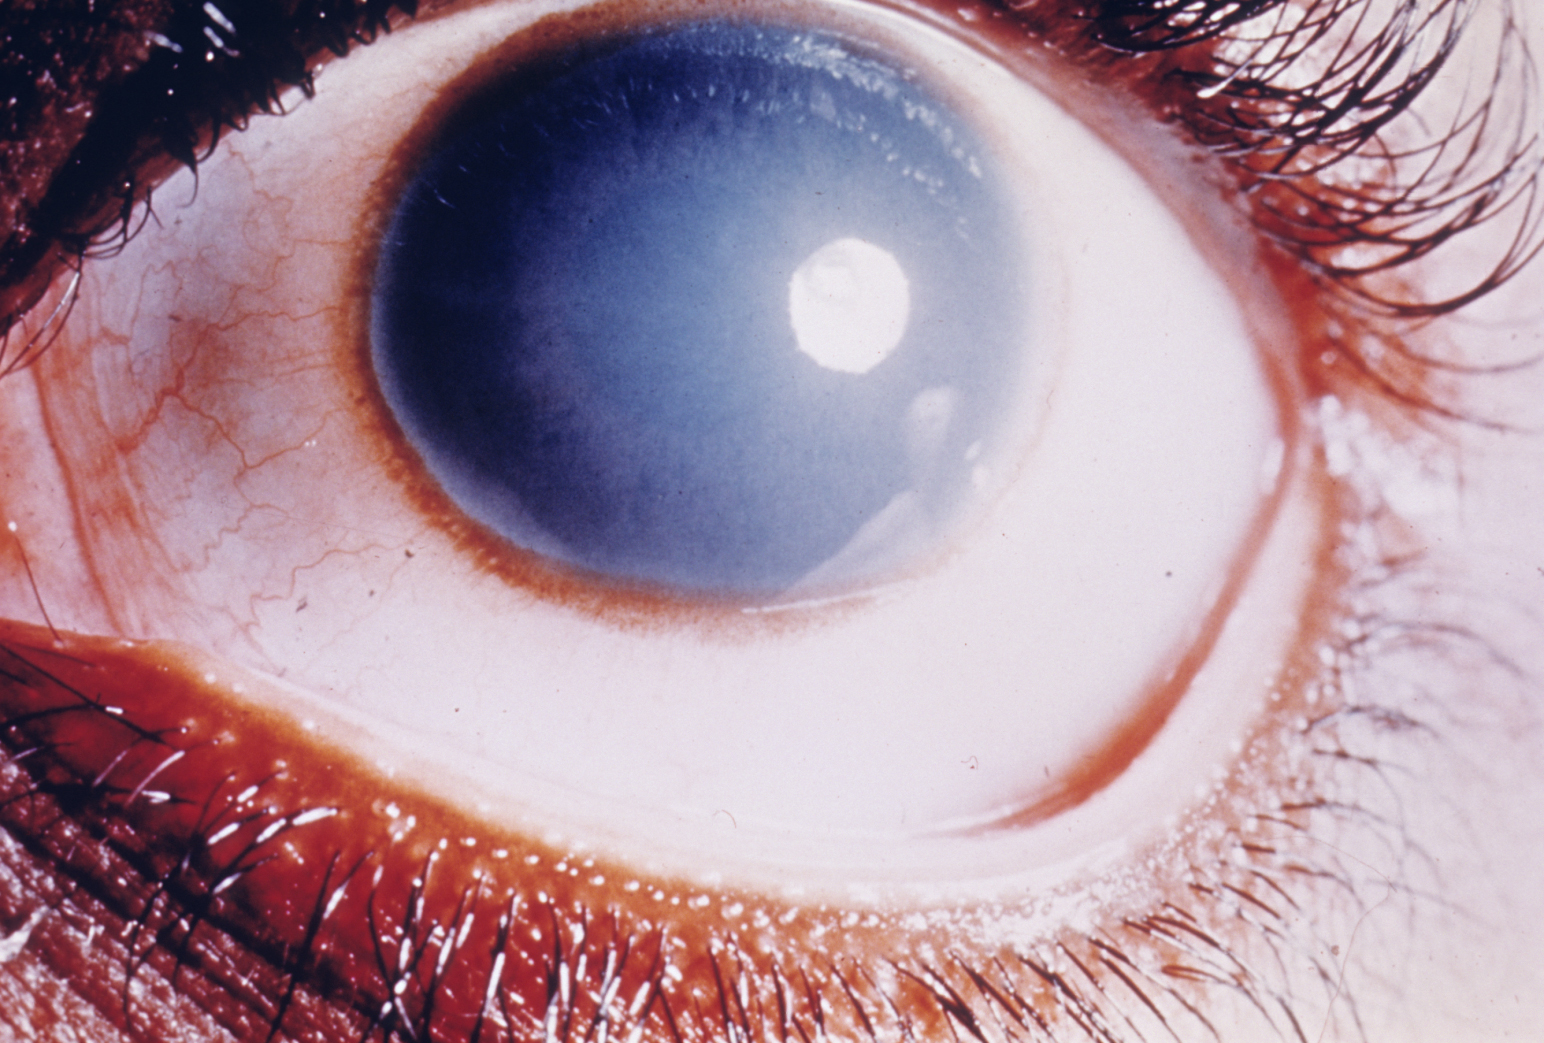 Cloudy cornea in congenital hereditary endothelial dystrophy of the cornea